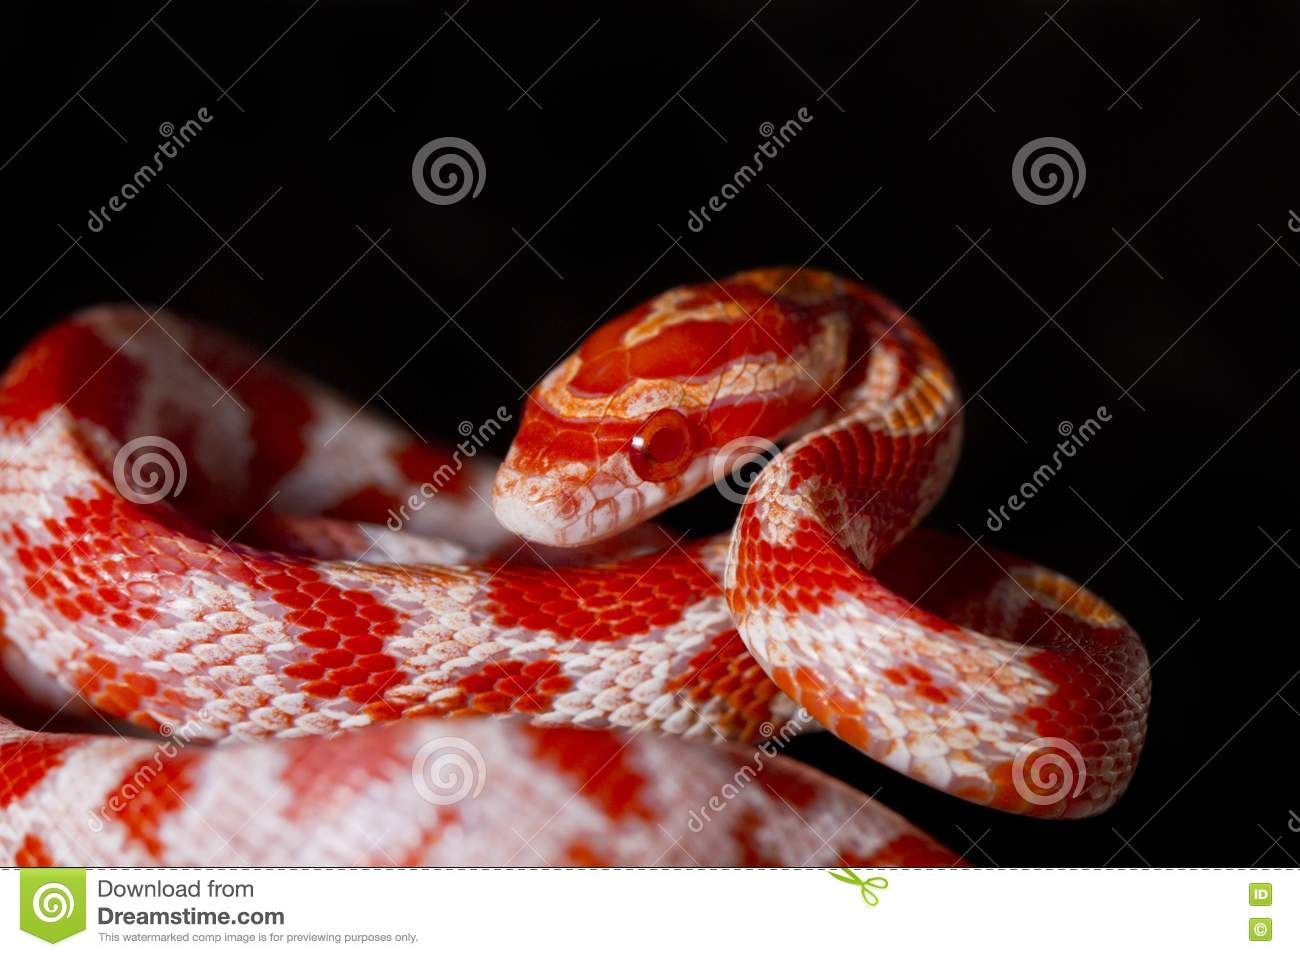 Red Corn Snake Stock Image - Image: 24103551